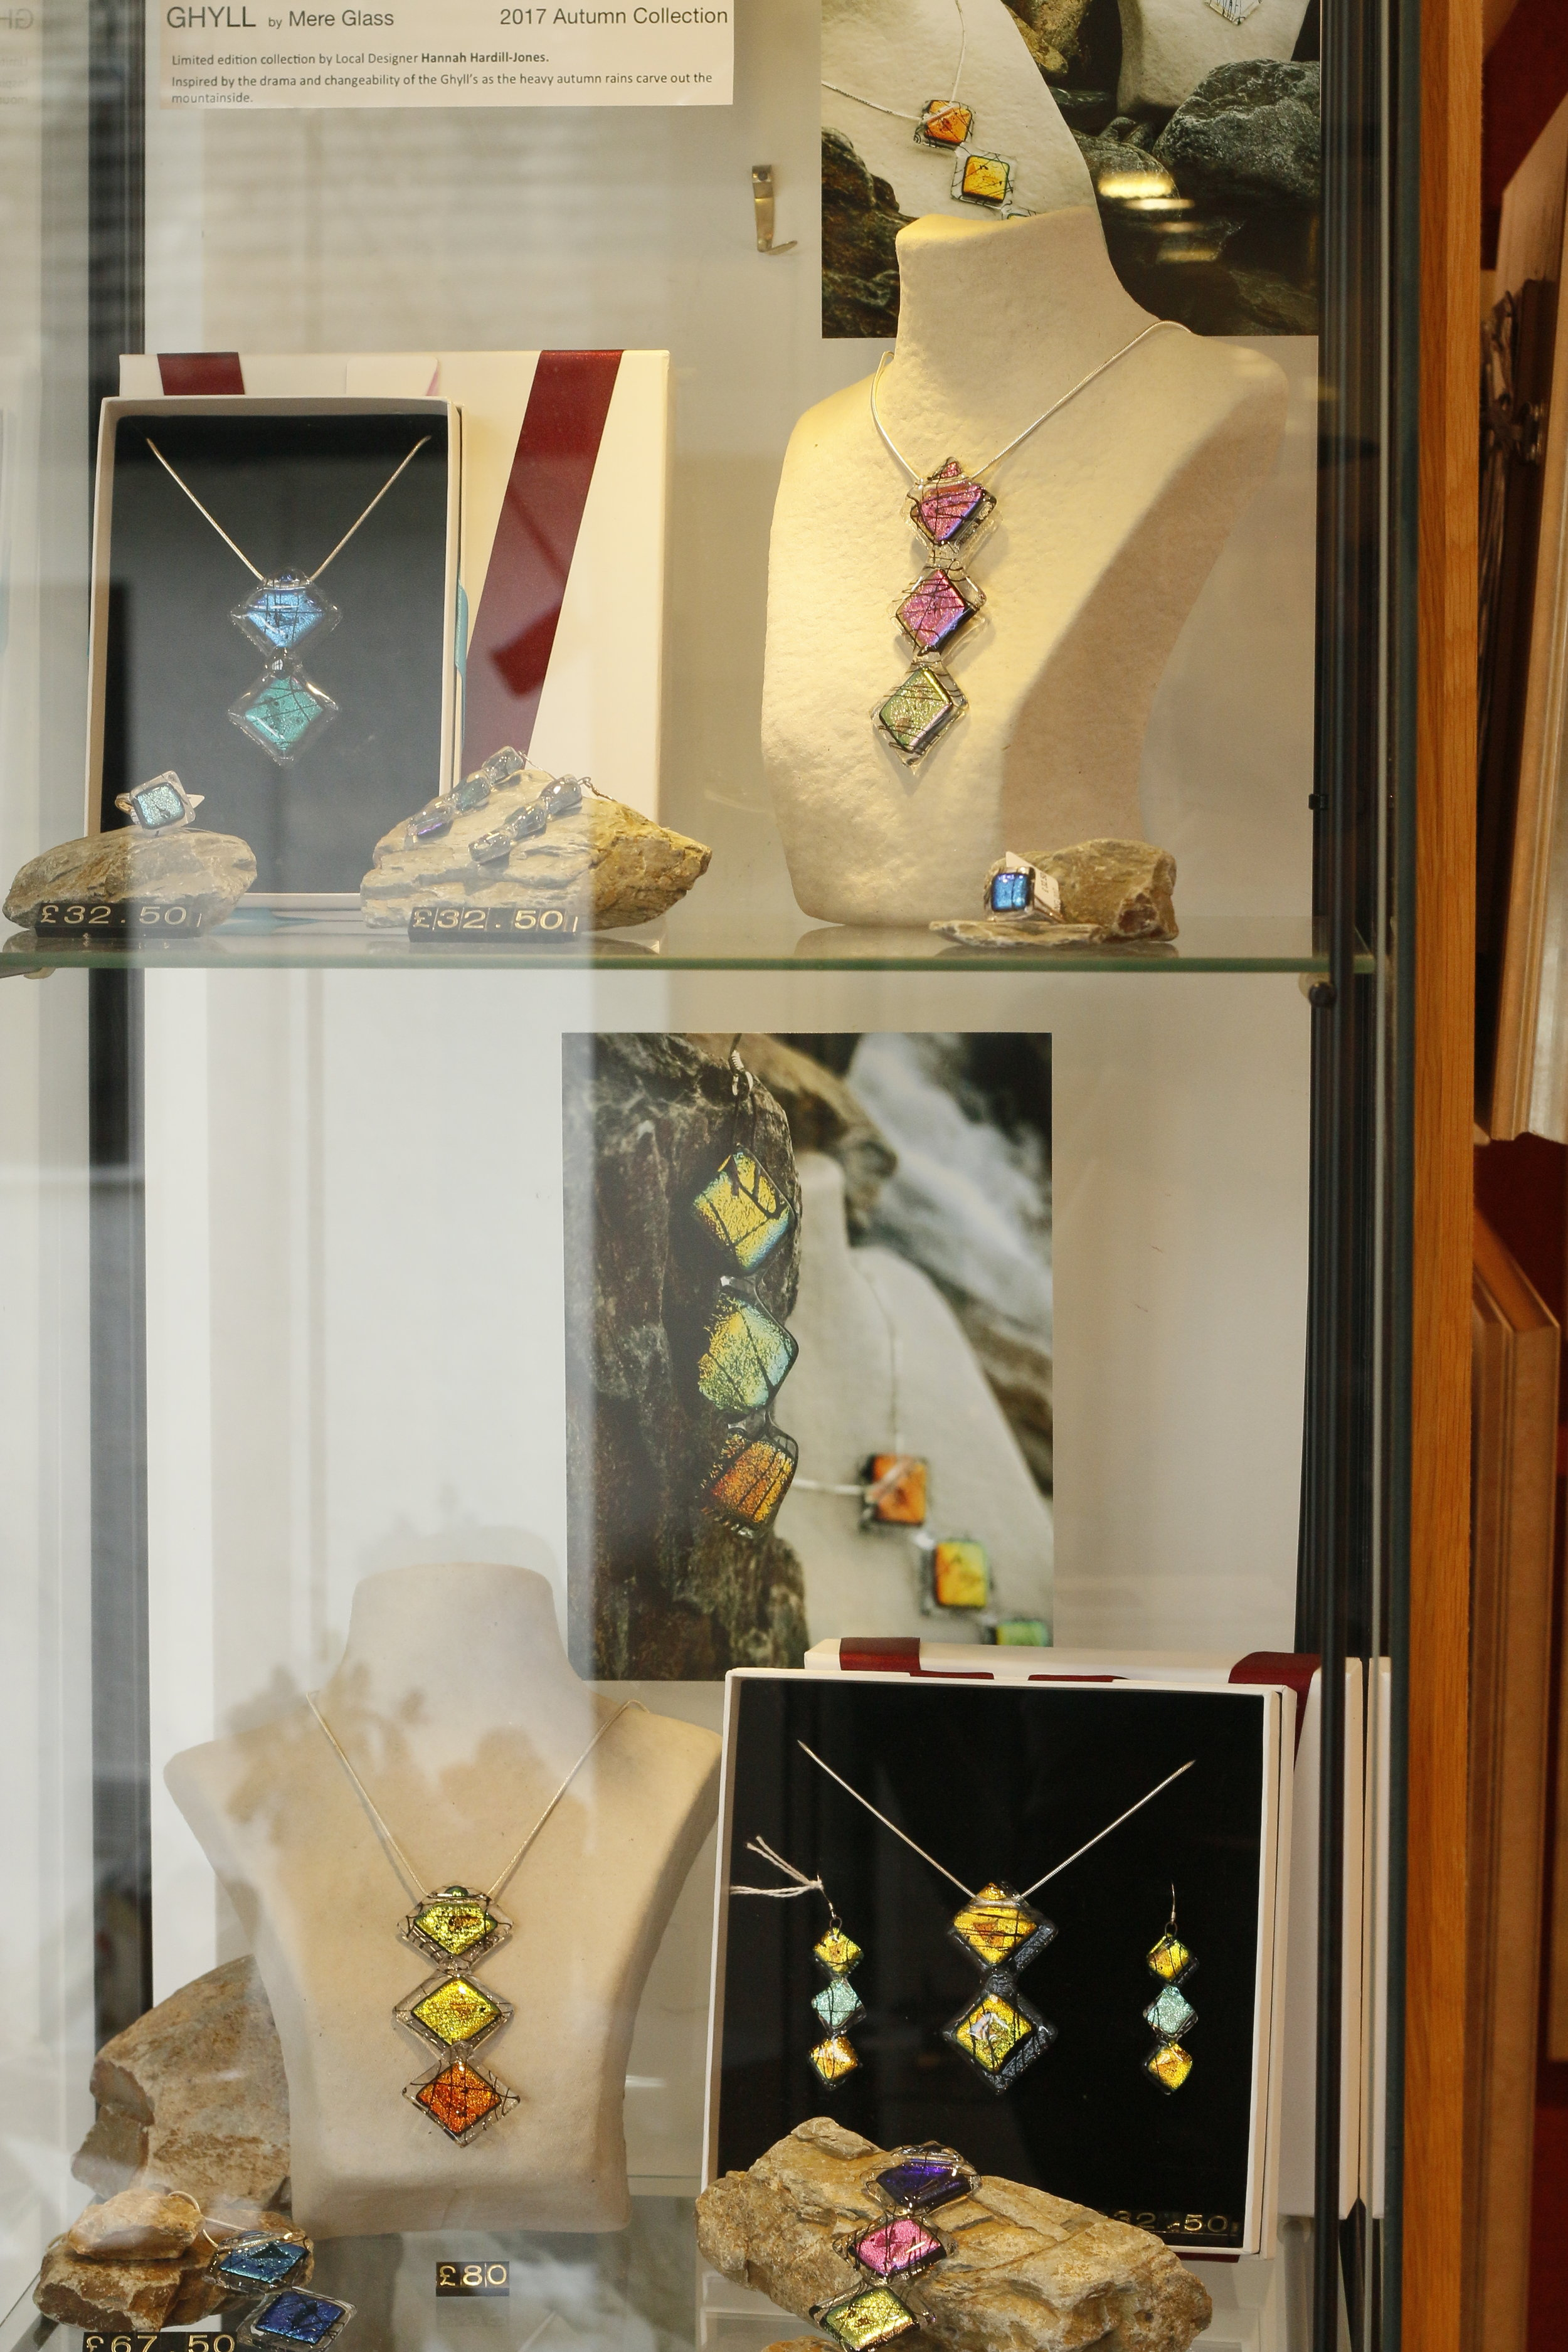 Mere Glass Ghyll Collection Pendant Necklace Autumn Orange Blue Pink Lake District Jewellery Glass Treeby&Bolton Display